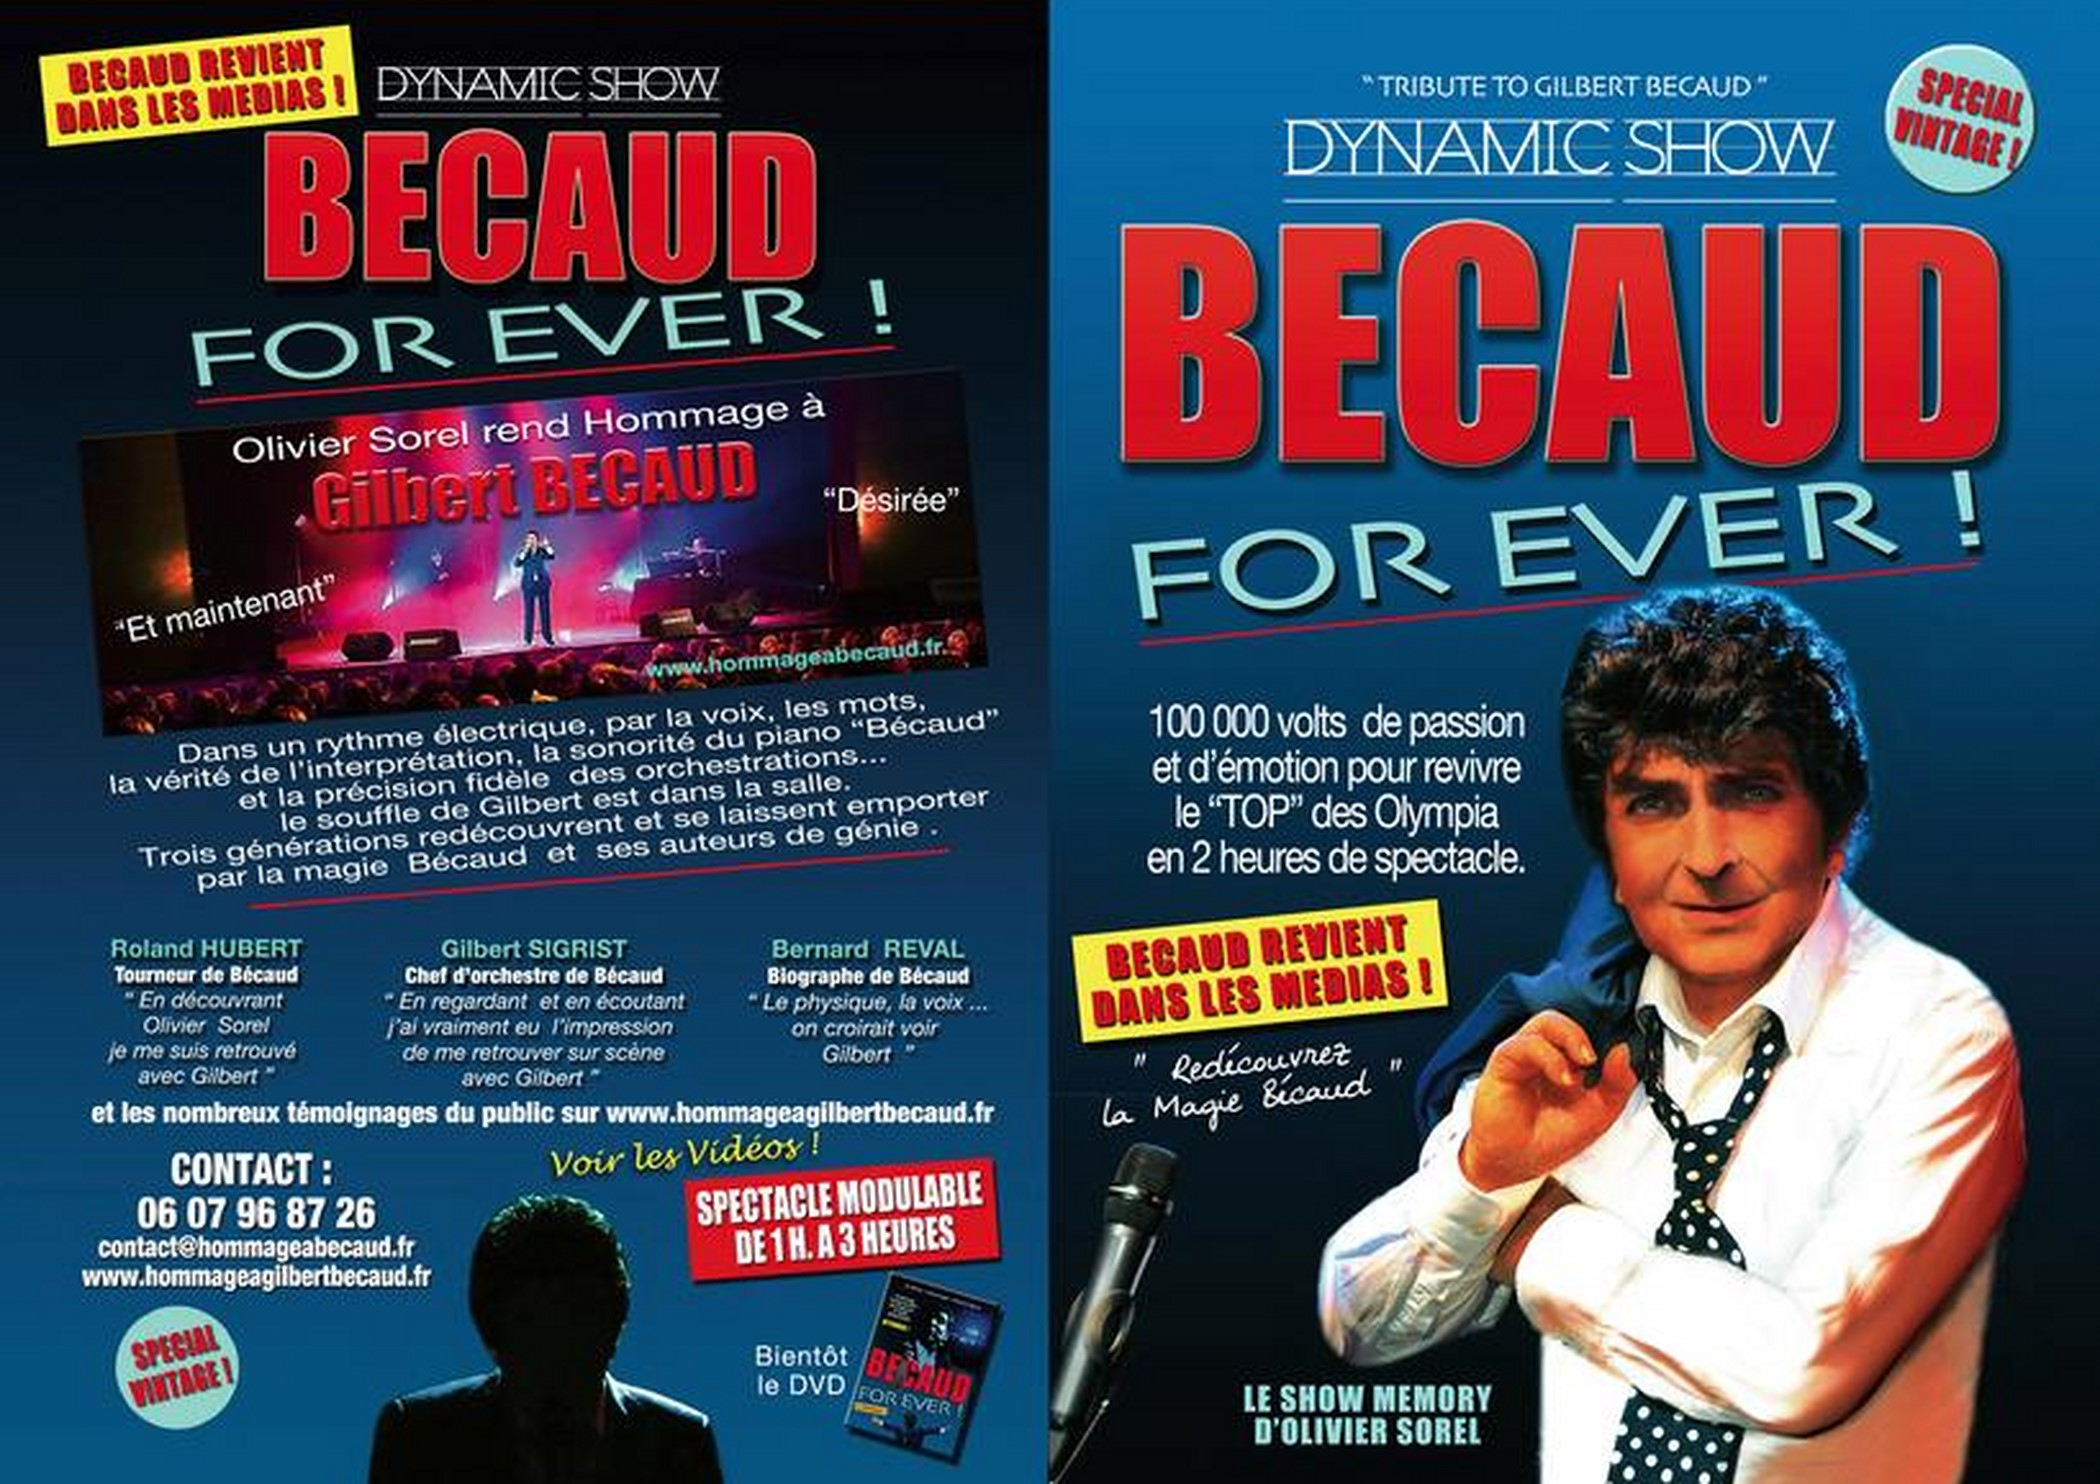 flyer_spectacle_hommage_becaud_for_ever_olivier_sorel_.jpg